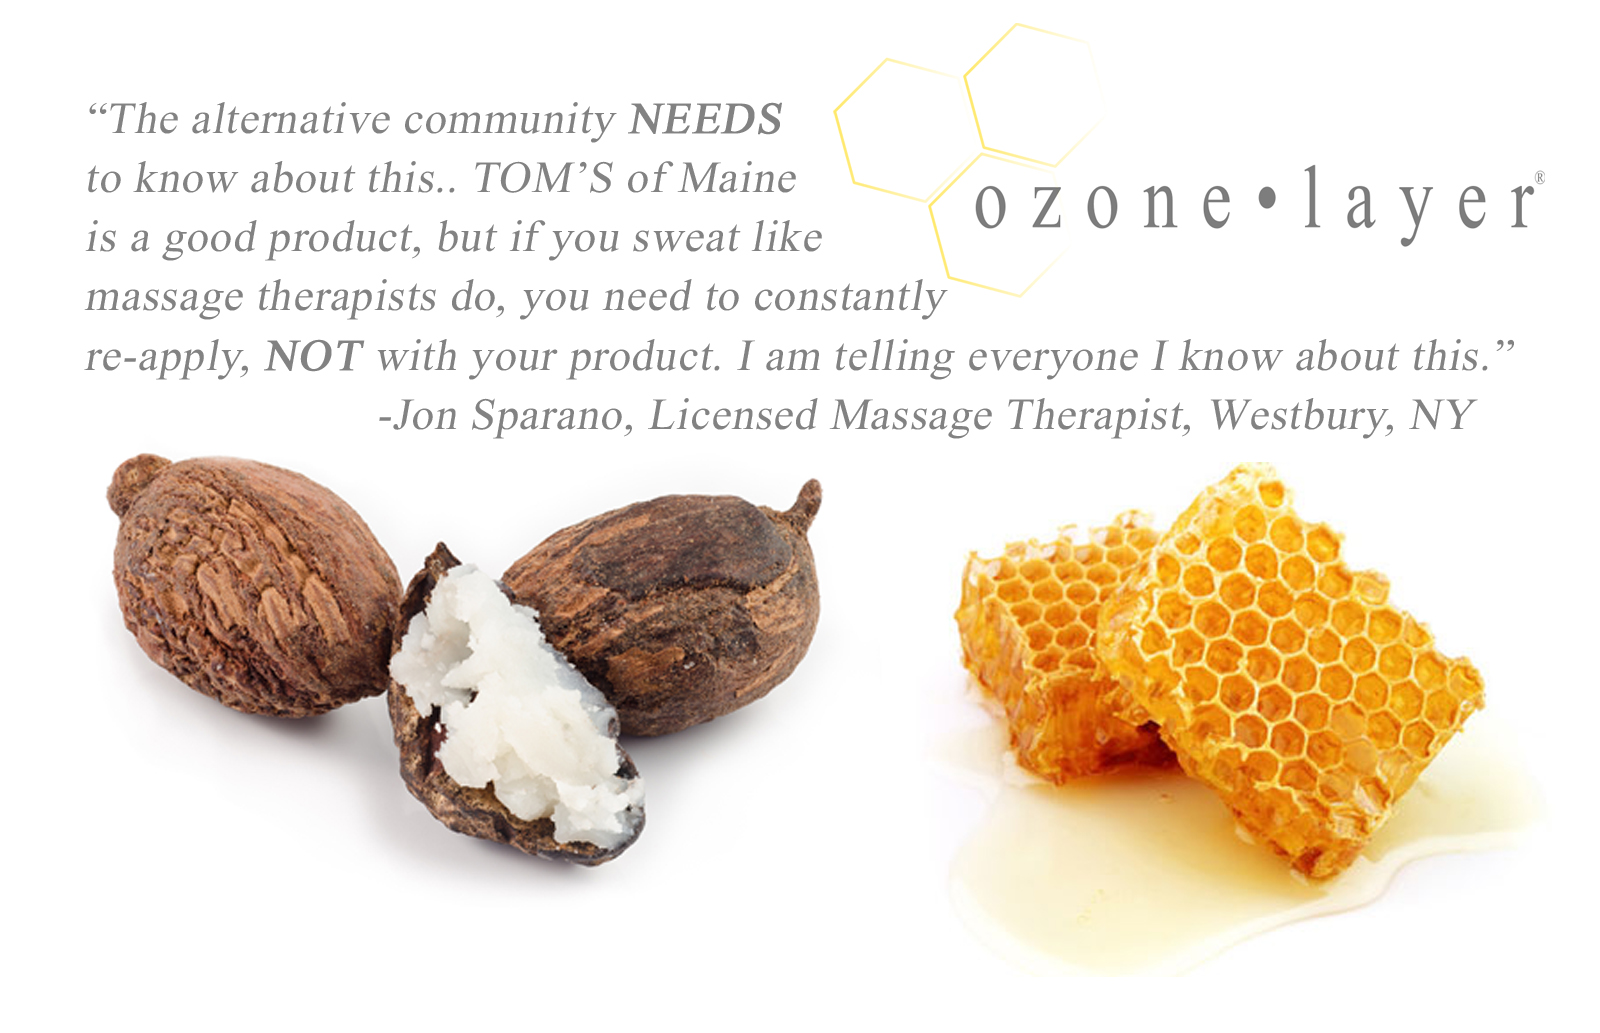 Ozone Layer Deodorant - all natural deodorant that is guaranteed to work. Simply shea butter and beeswax infused with oxygen, which oxidizes anaerobic bacteria, eliminating the root cause of body odor.